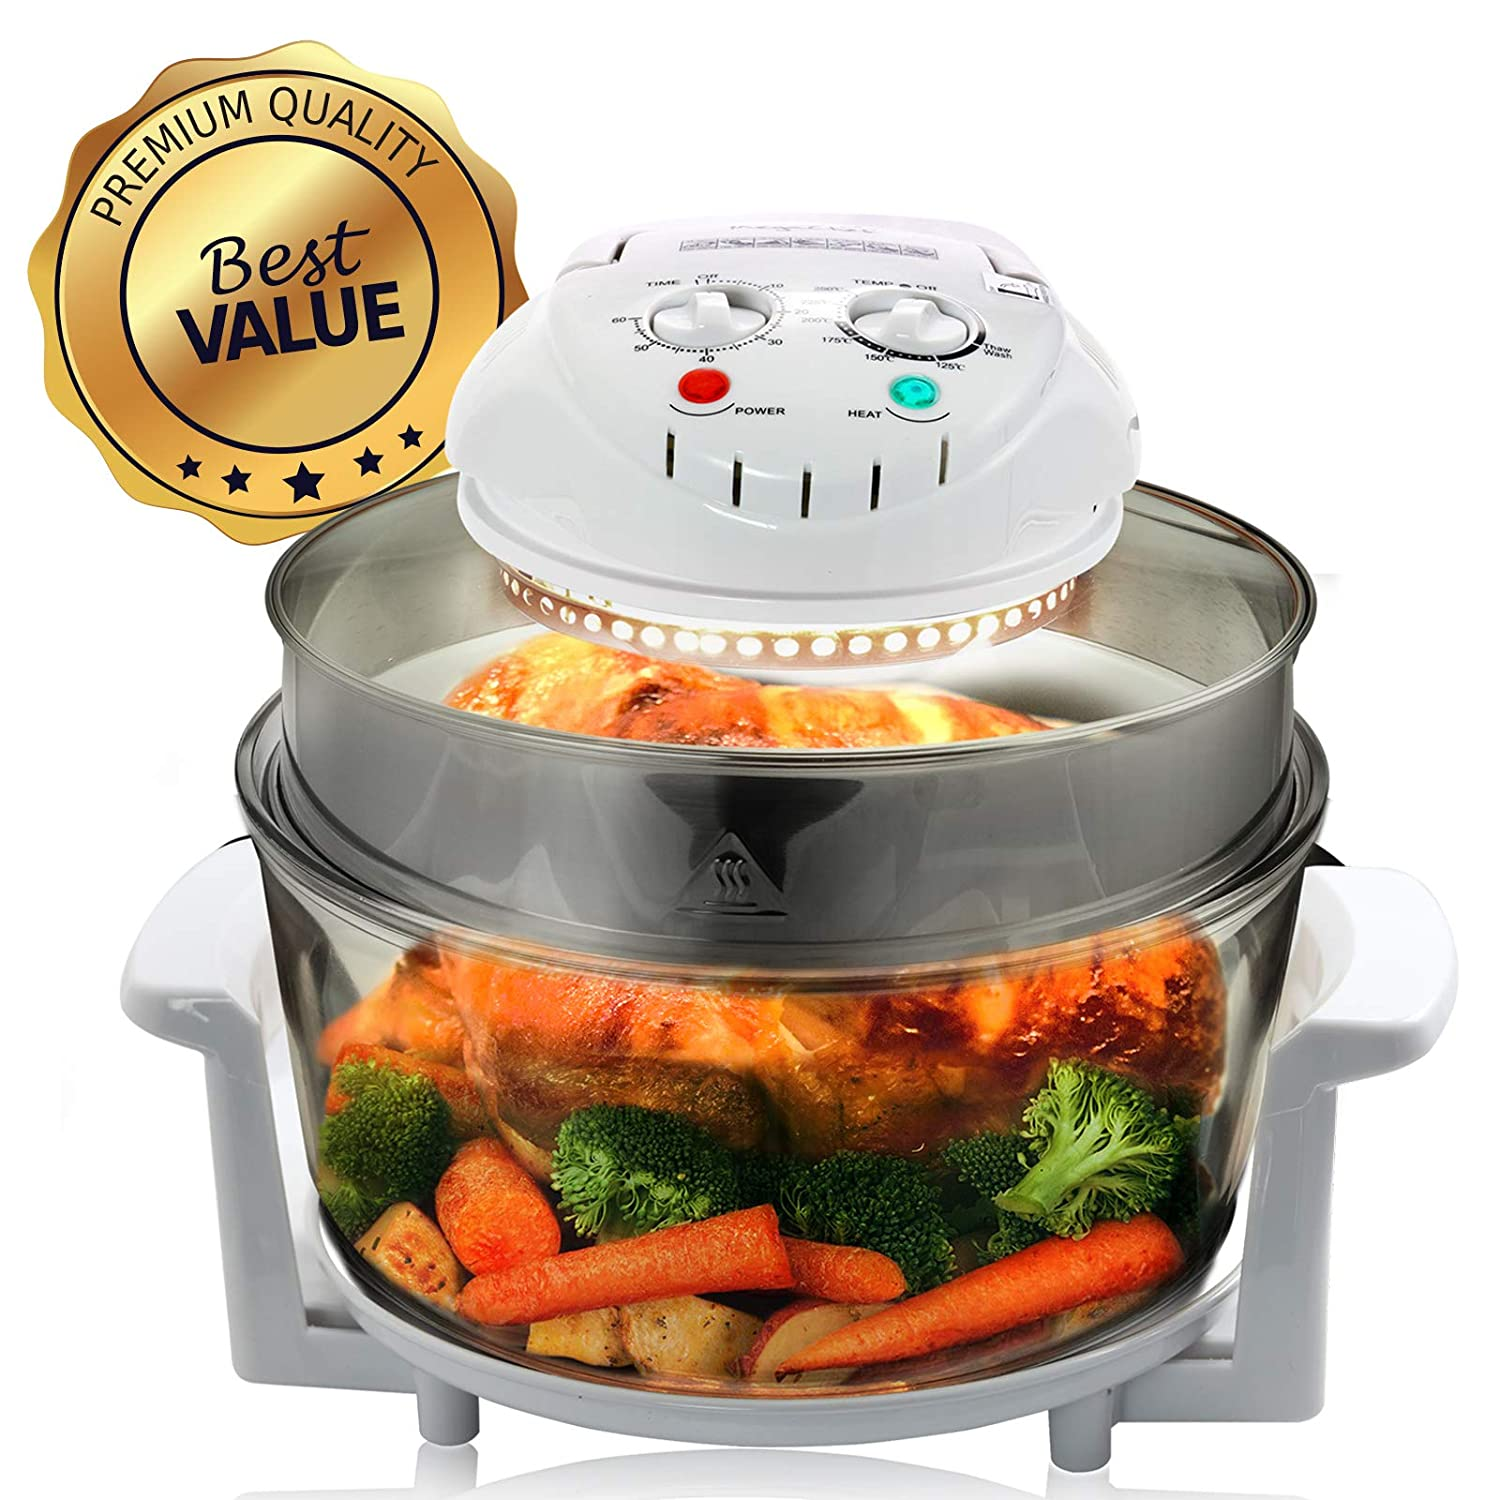 Megachef 930111879M Multipurpose Halogen Oven Air fryer in White, 13 quart